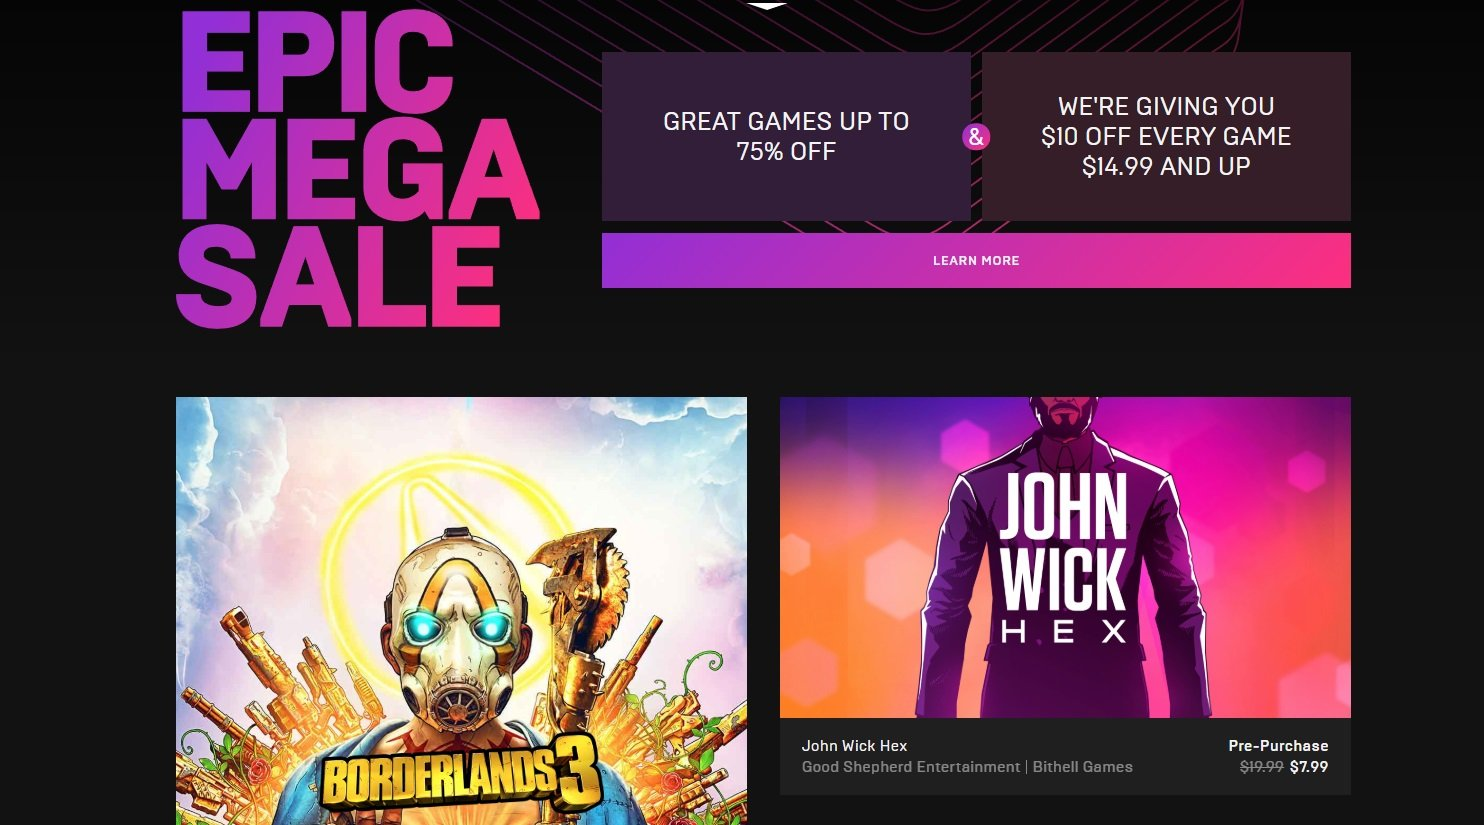 Epic Games is hosting a Mega Sale with discounts on all games including pre-orders of John Wick Hex.